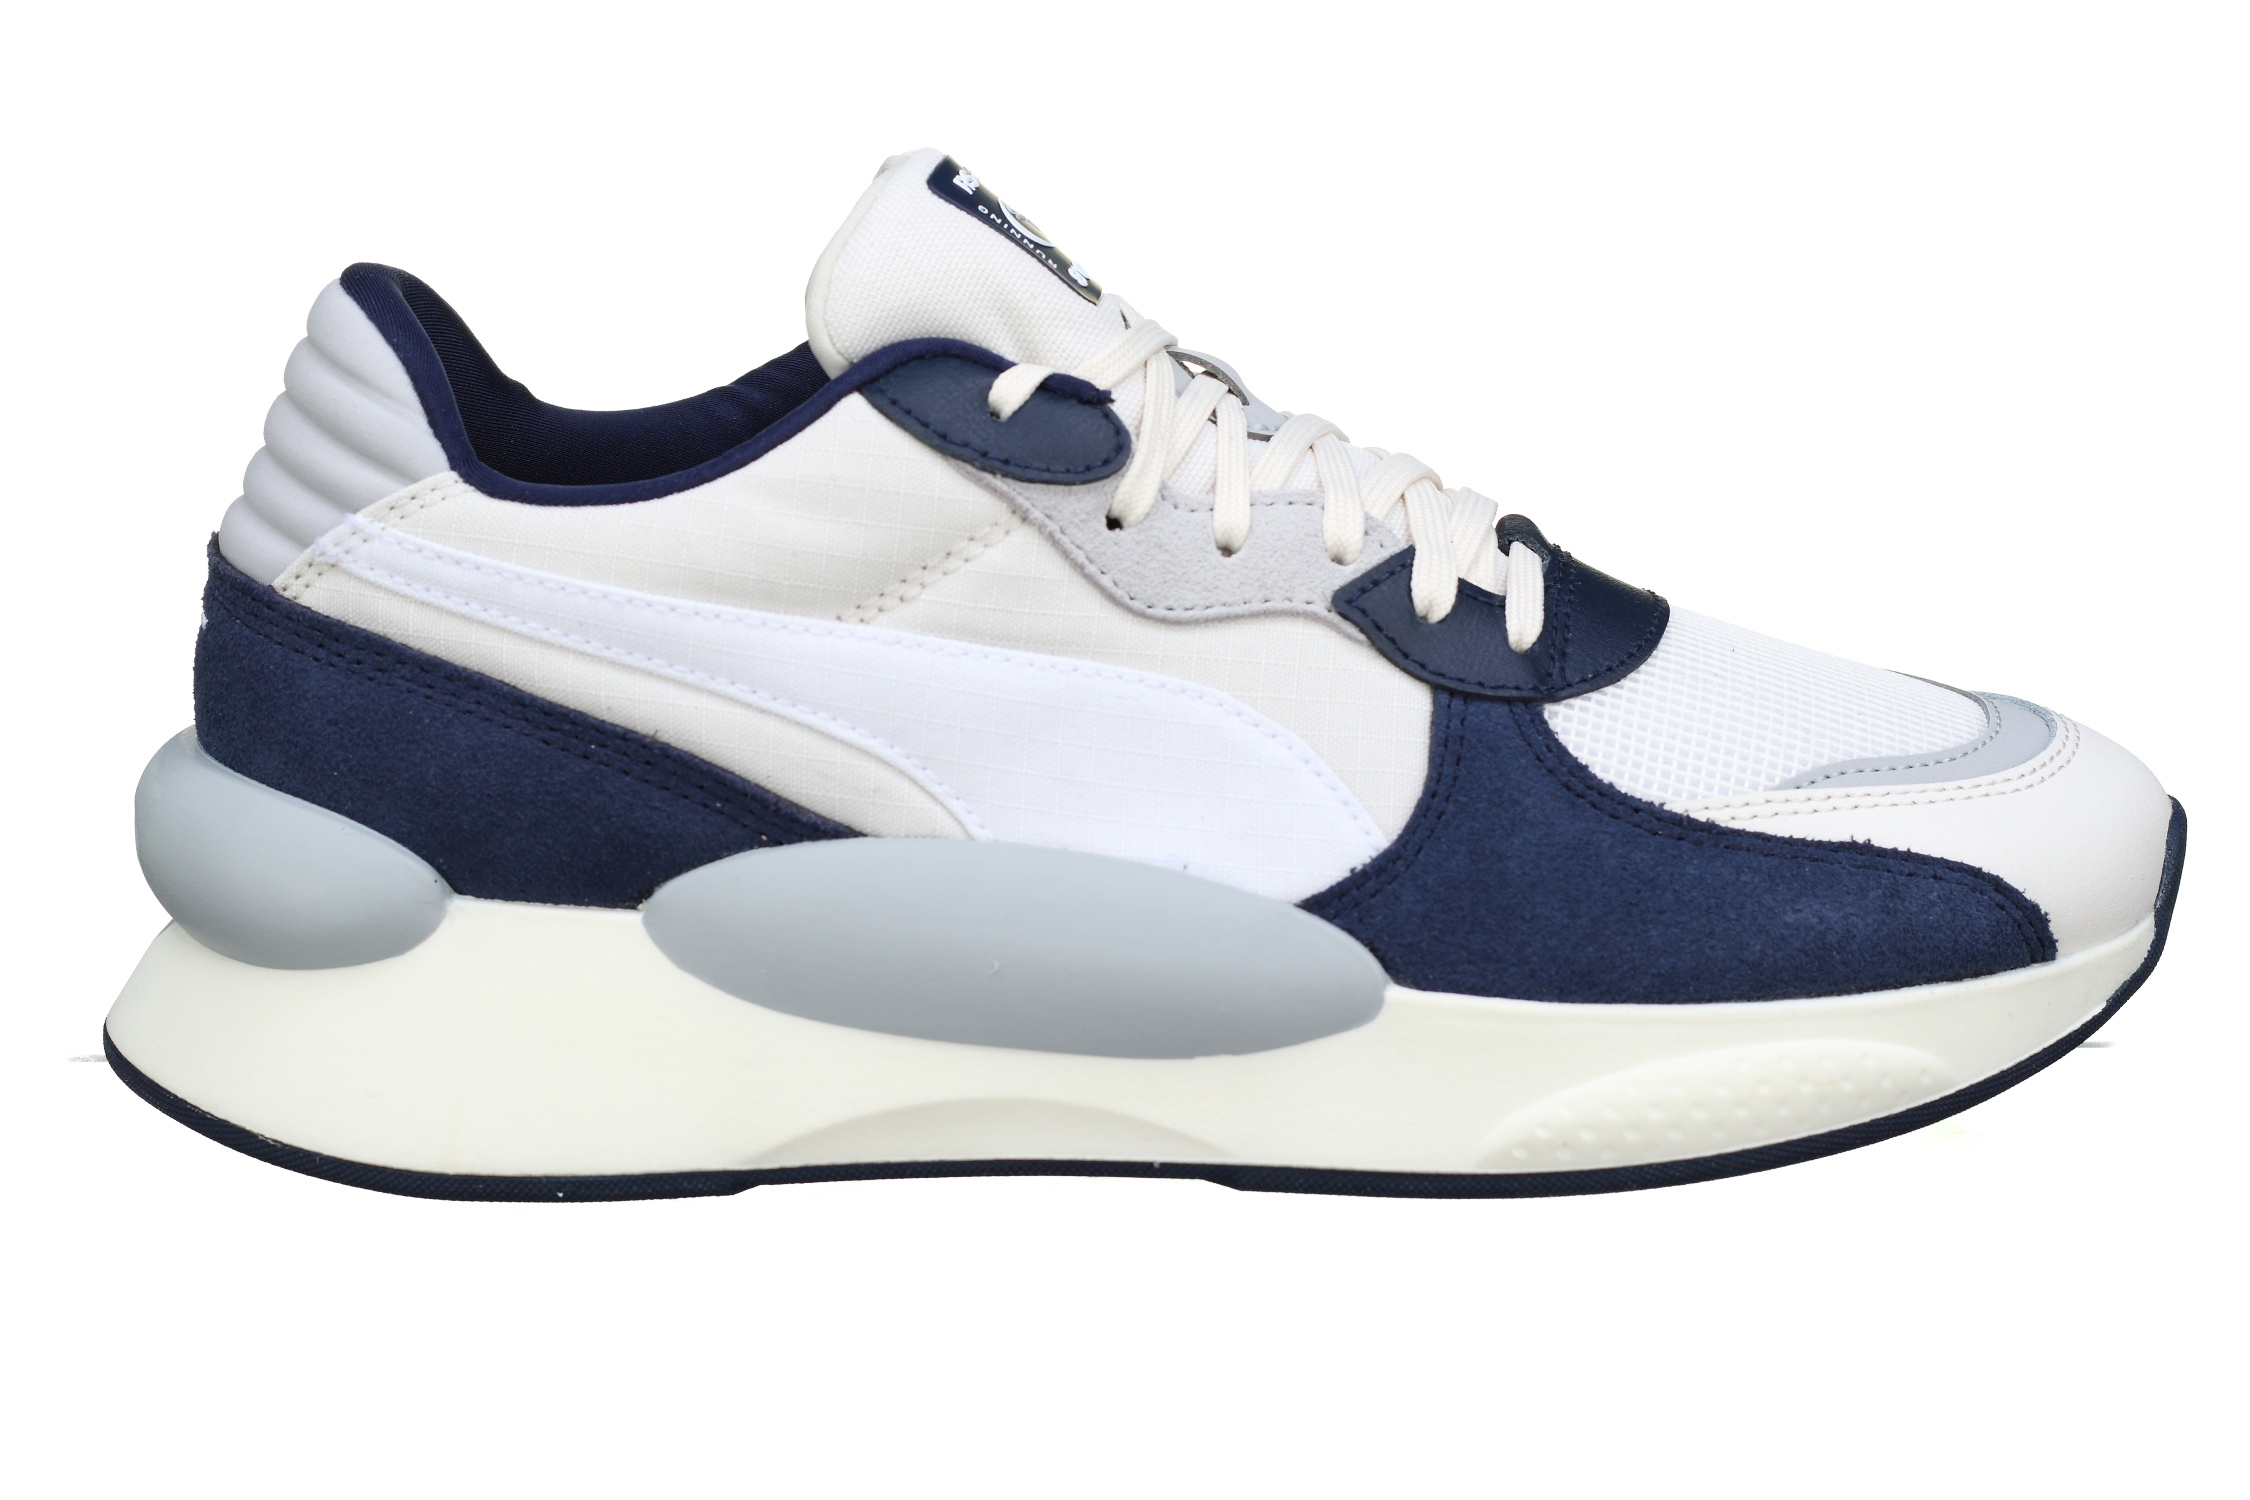 http://www.leadermode.com/176090/puma-rs-98-space-370230-02-white-blue.jpg